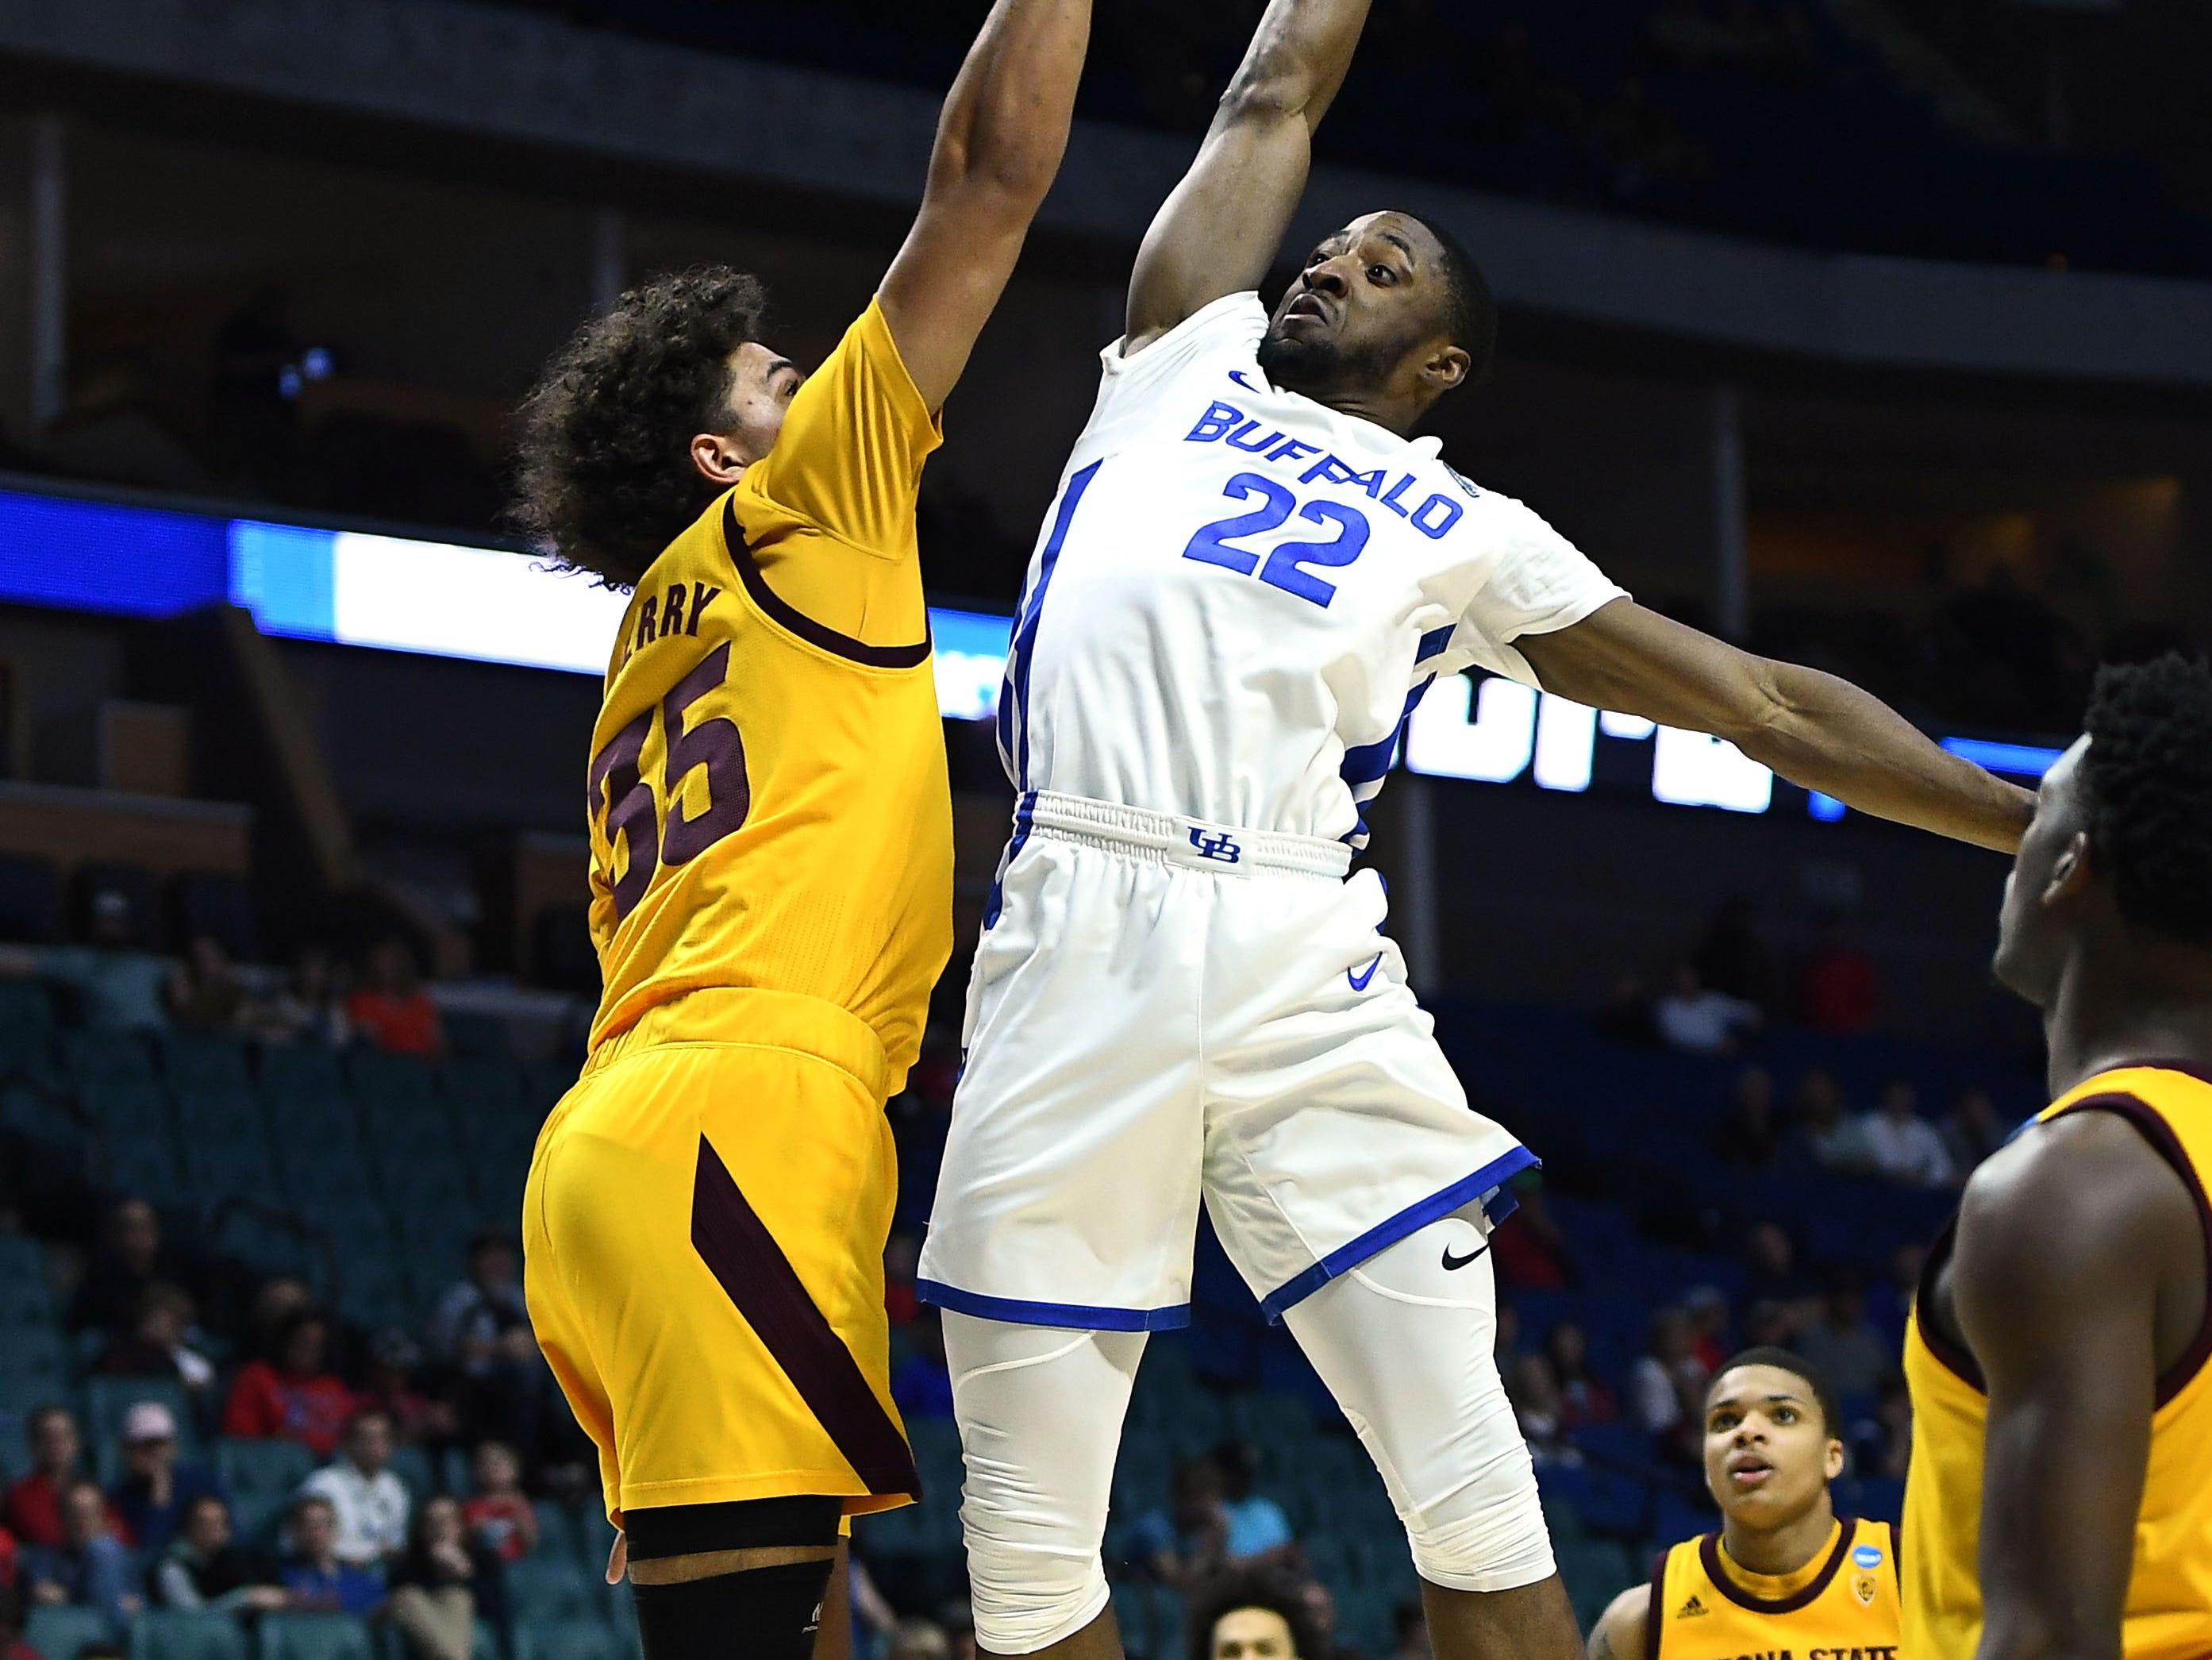 TULSA, OKLAHOMA - MARCH 22:  Taeshon Cherry #35 of the Arizona State Sun Devils blocks a shot by Dontay Caruthers #22 of the Buffalo Bulls during the second half of the first round game of the 2019 NCAA Men's Basketball Tournament at BOK Center on March 22, 2019 in Tulsa, Oklahoma. (Photo by Stacy Revere/Getty Images)